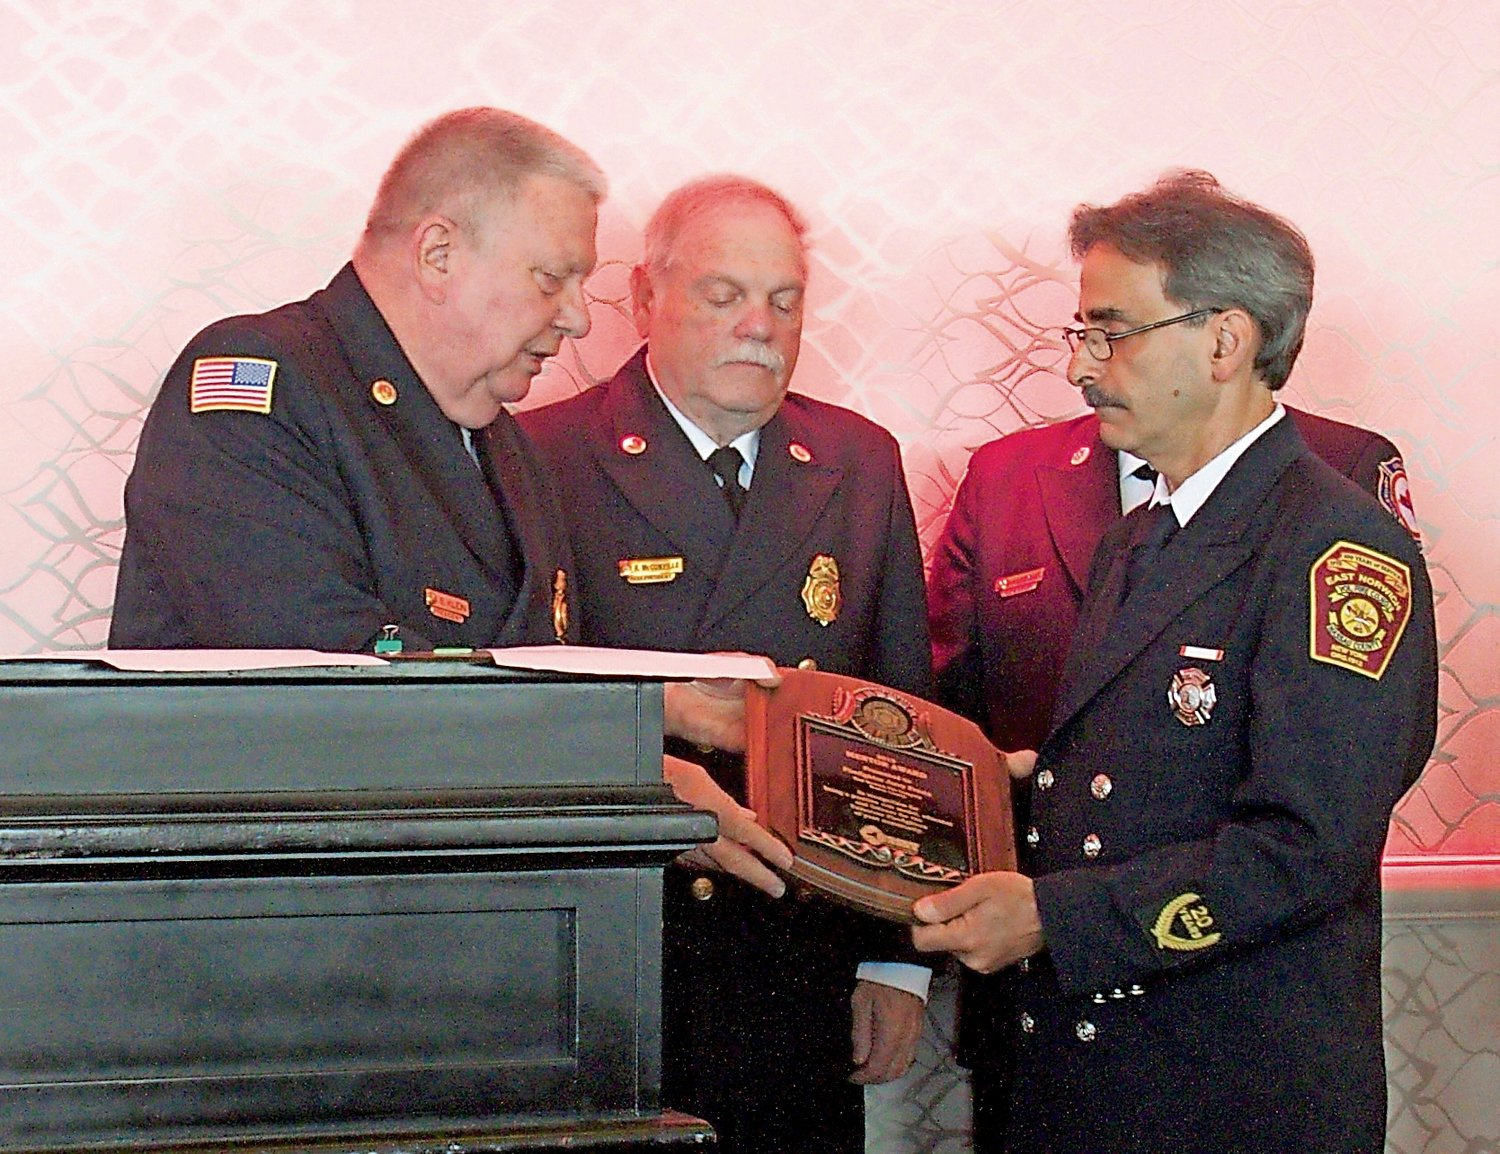 Steven Klein, far left, president of the Firemen's Association of the State of New York, presented Gerard Presta with the Youth Mentor of the Year award as former association President Bob McConville looked on.